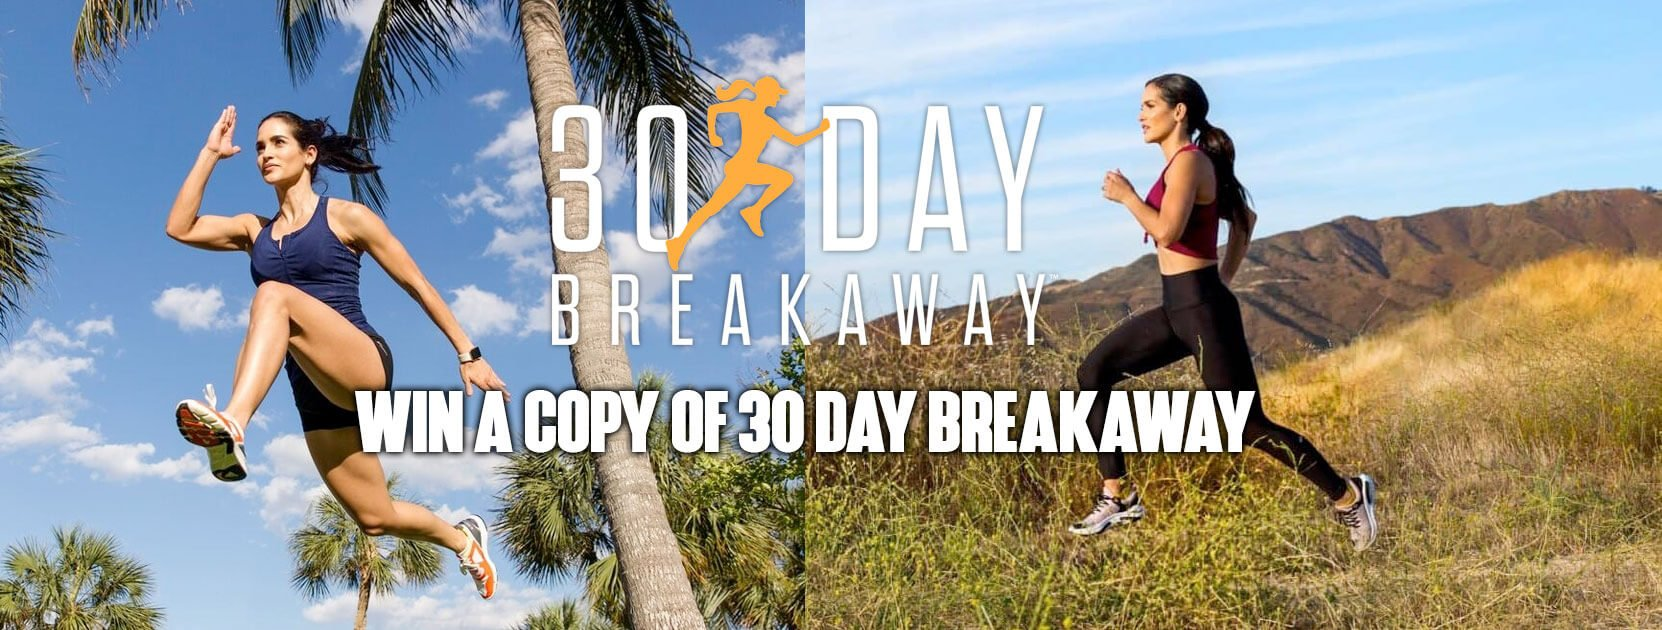 Win a Copy of 30 Day Breakaway